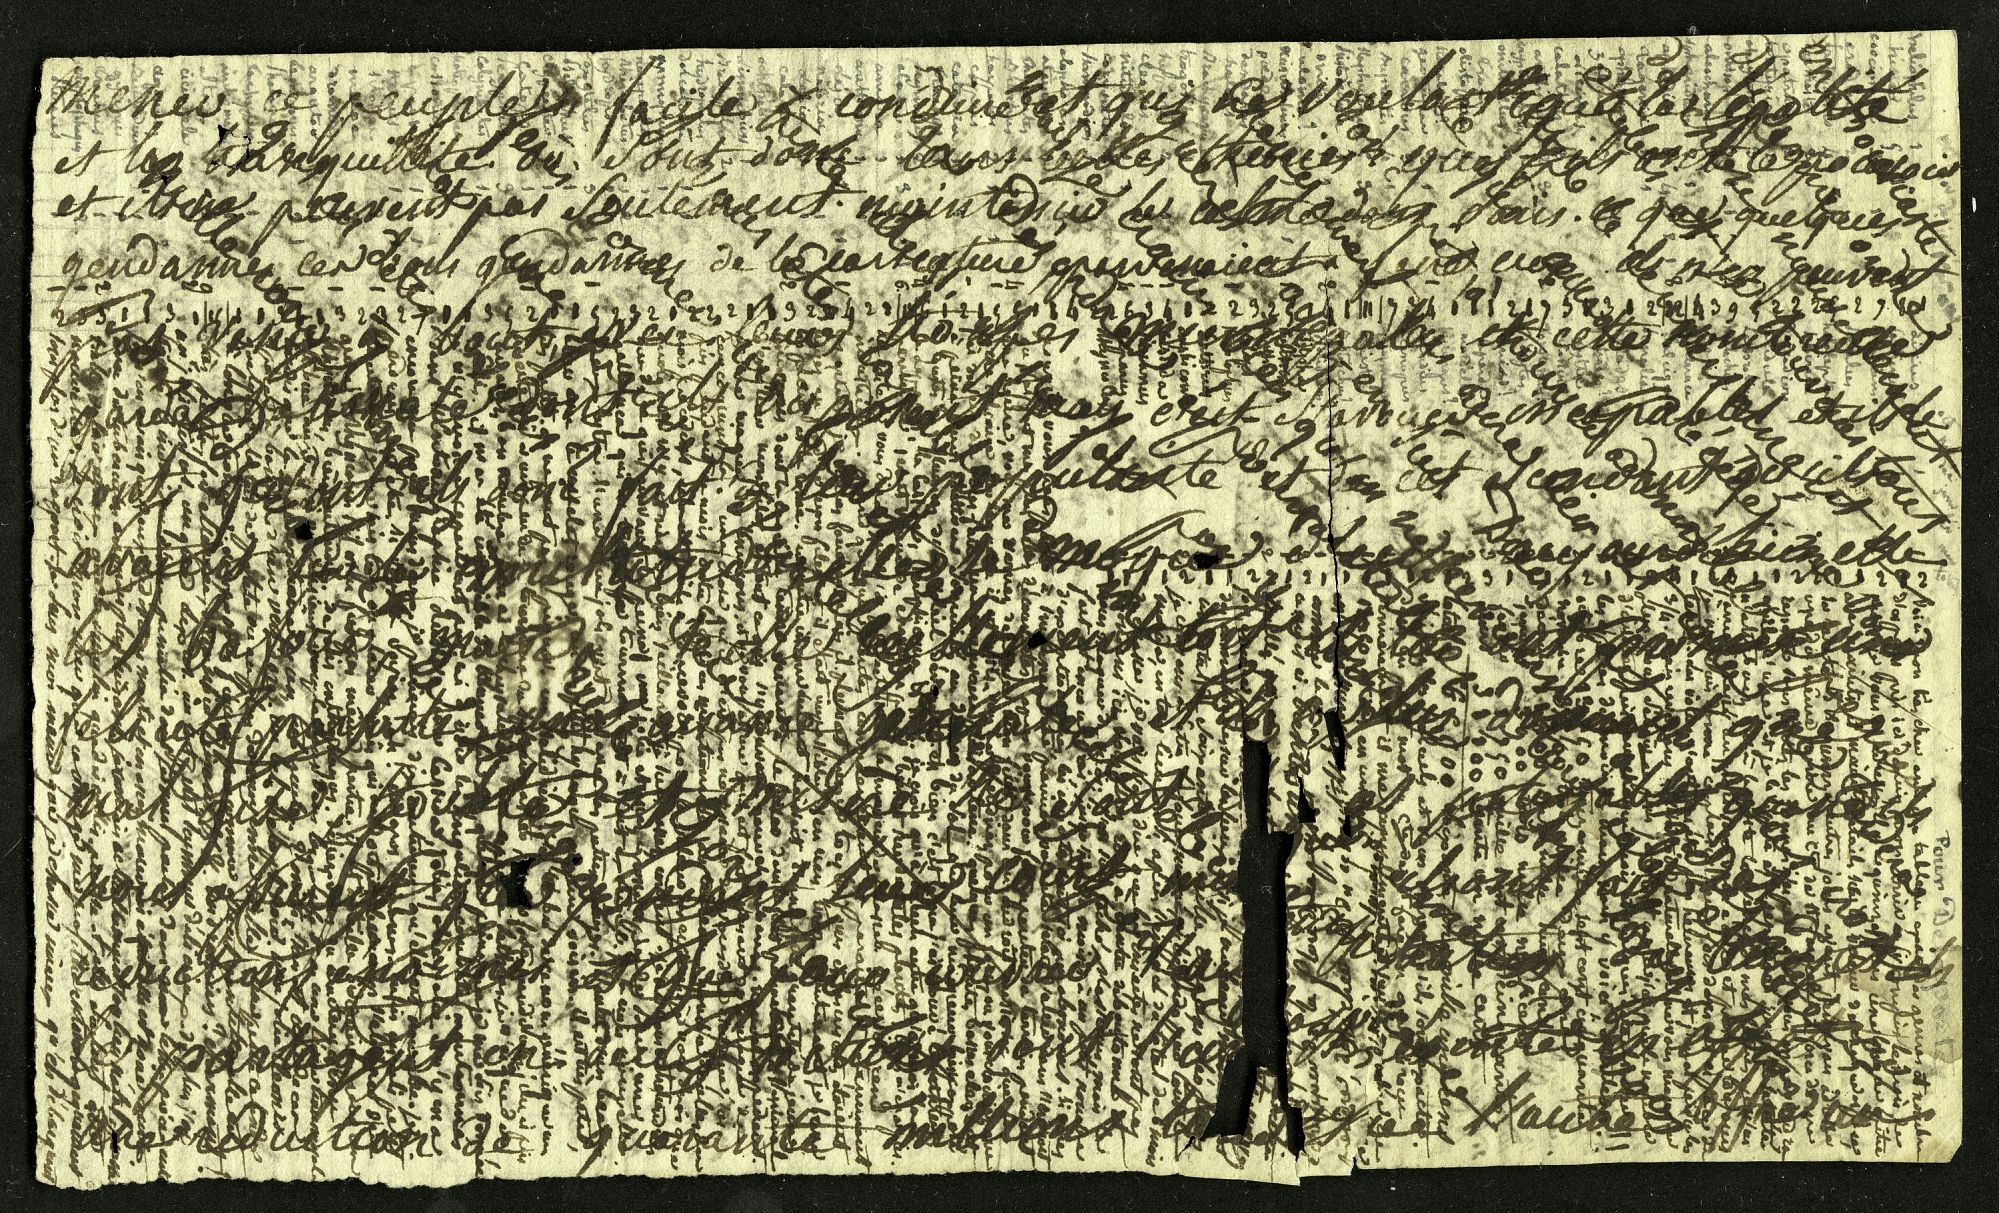 Archival document with black writing.